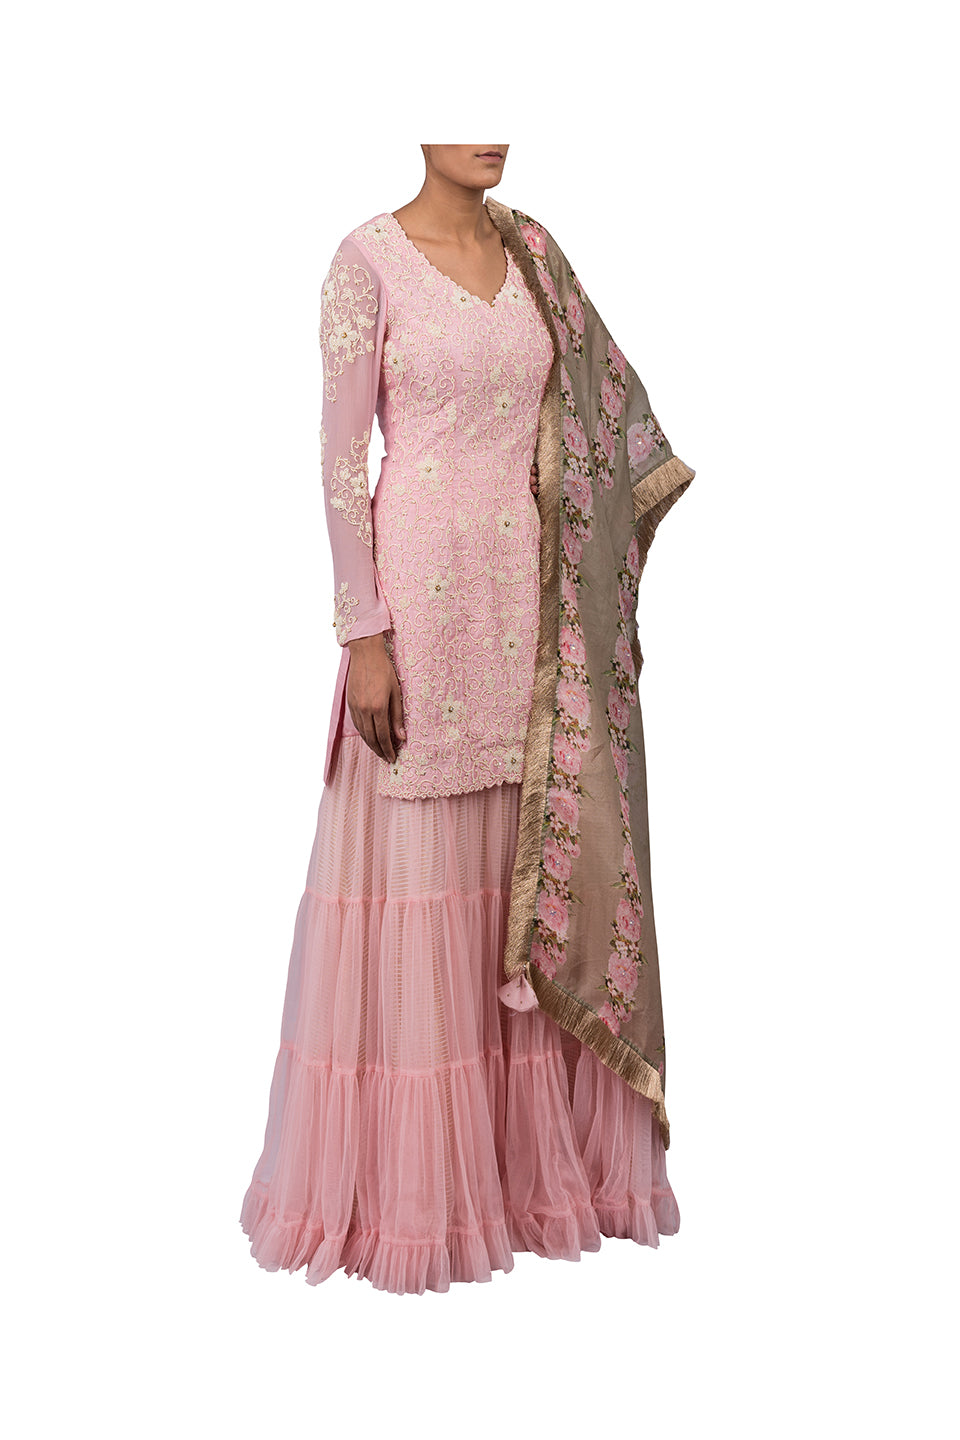 MOTI JAAL SUIT WITH NET SHARARA SKIRT WITH ORGANZA DIGITAL PRINT PEONIES OLIVE GREEN DUPATTA